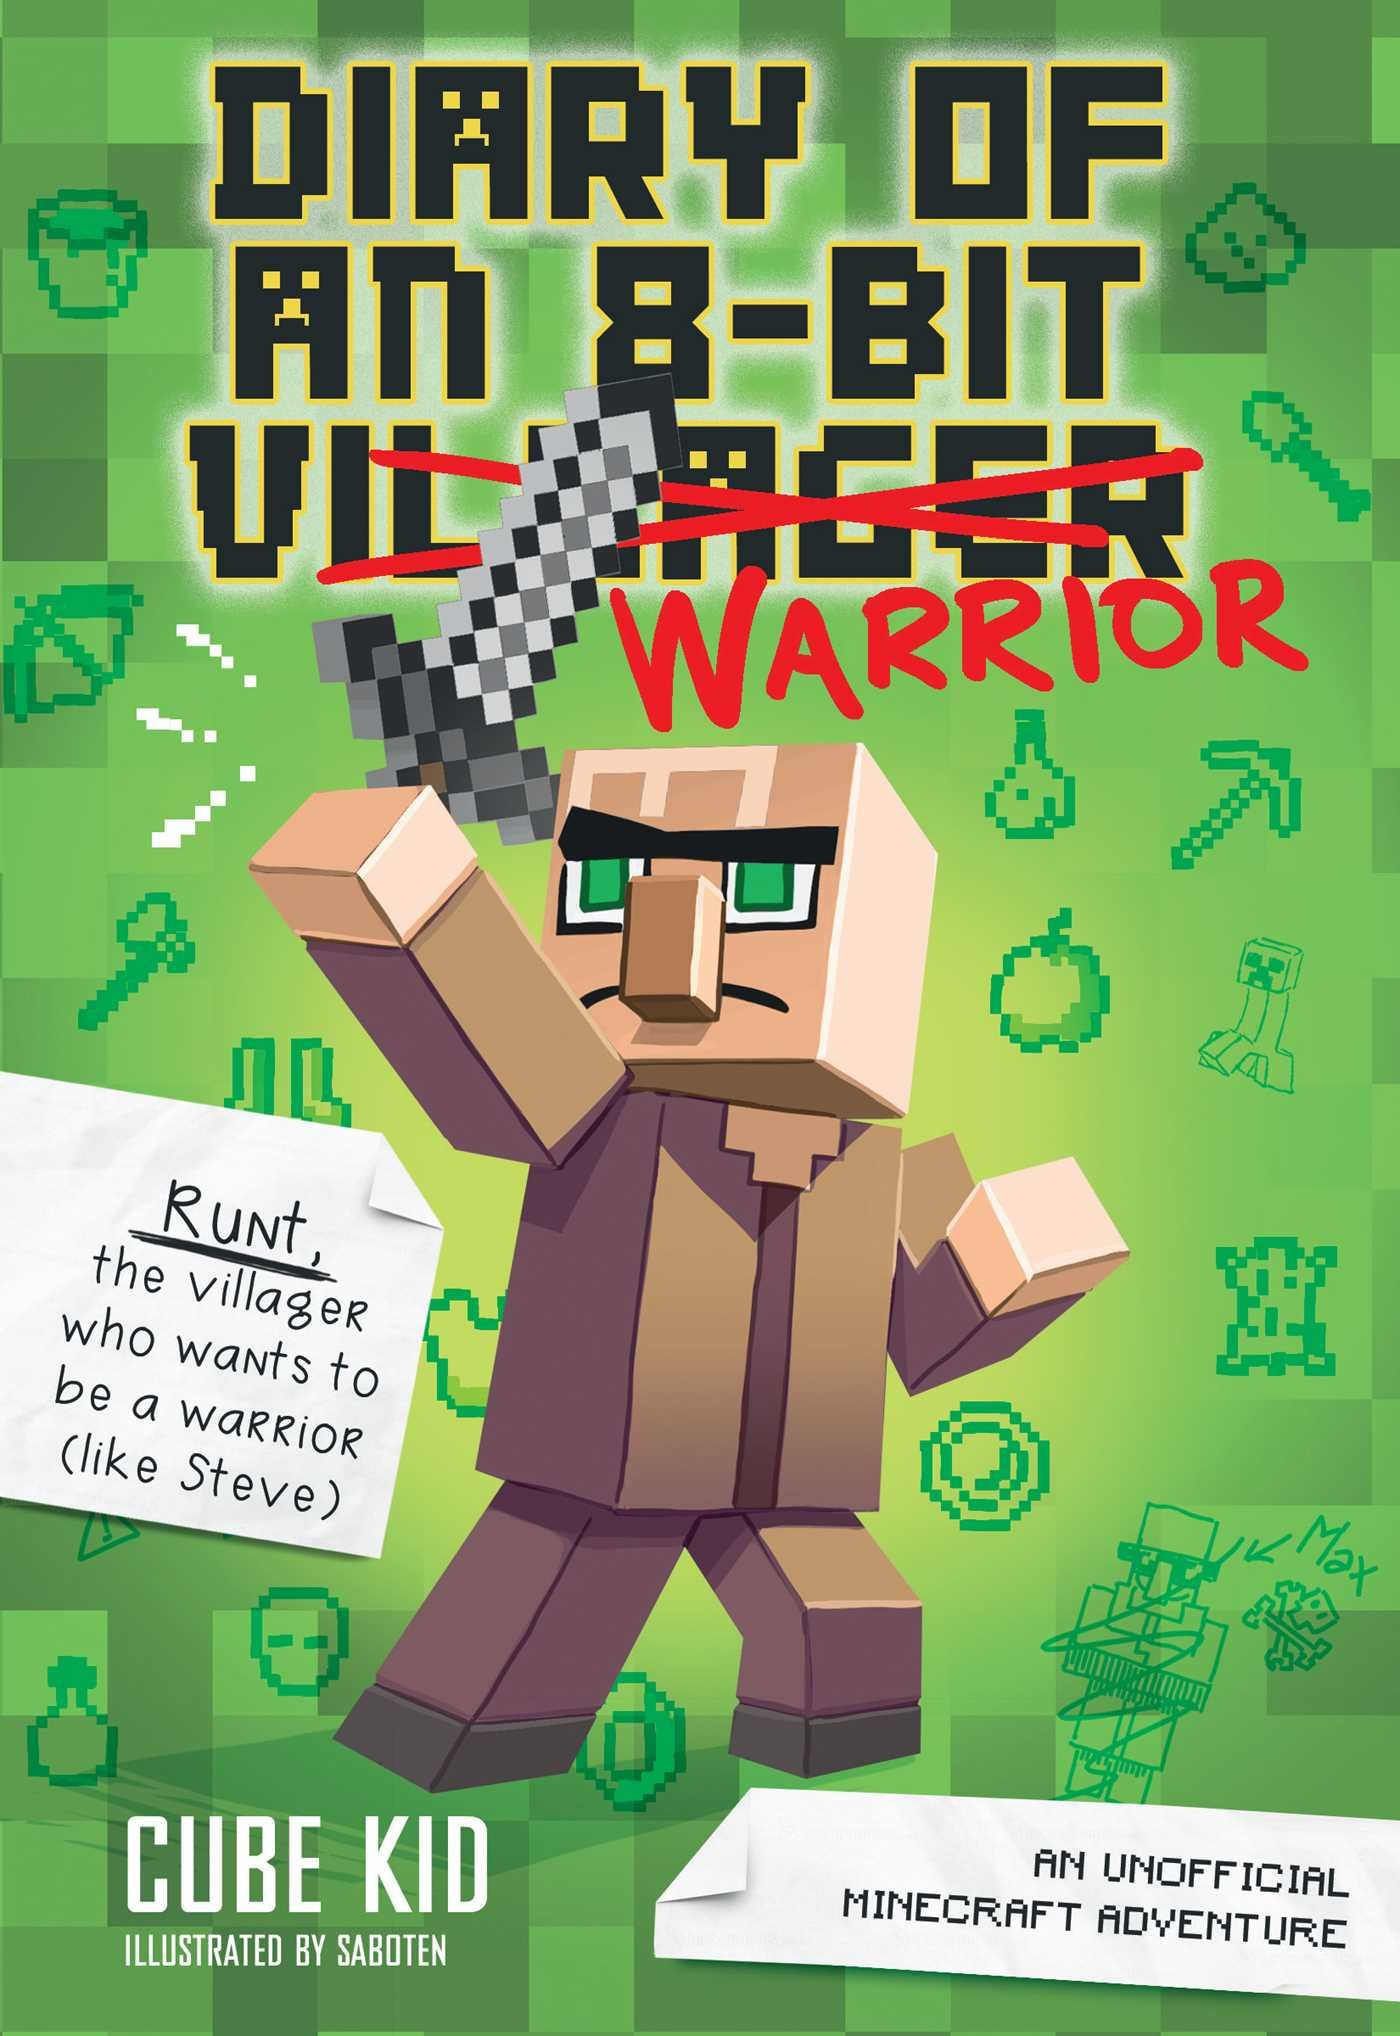 Diary 8 Bit Warrior Book Unofficial product image